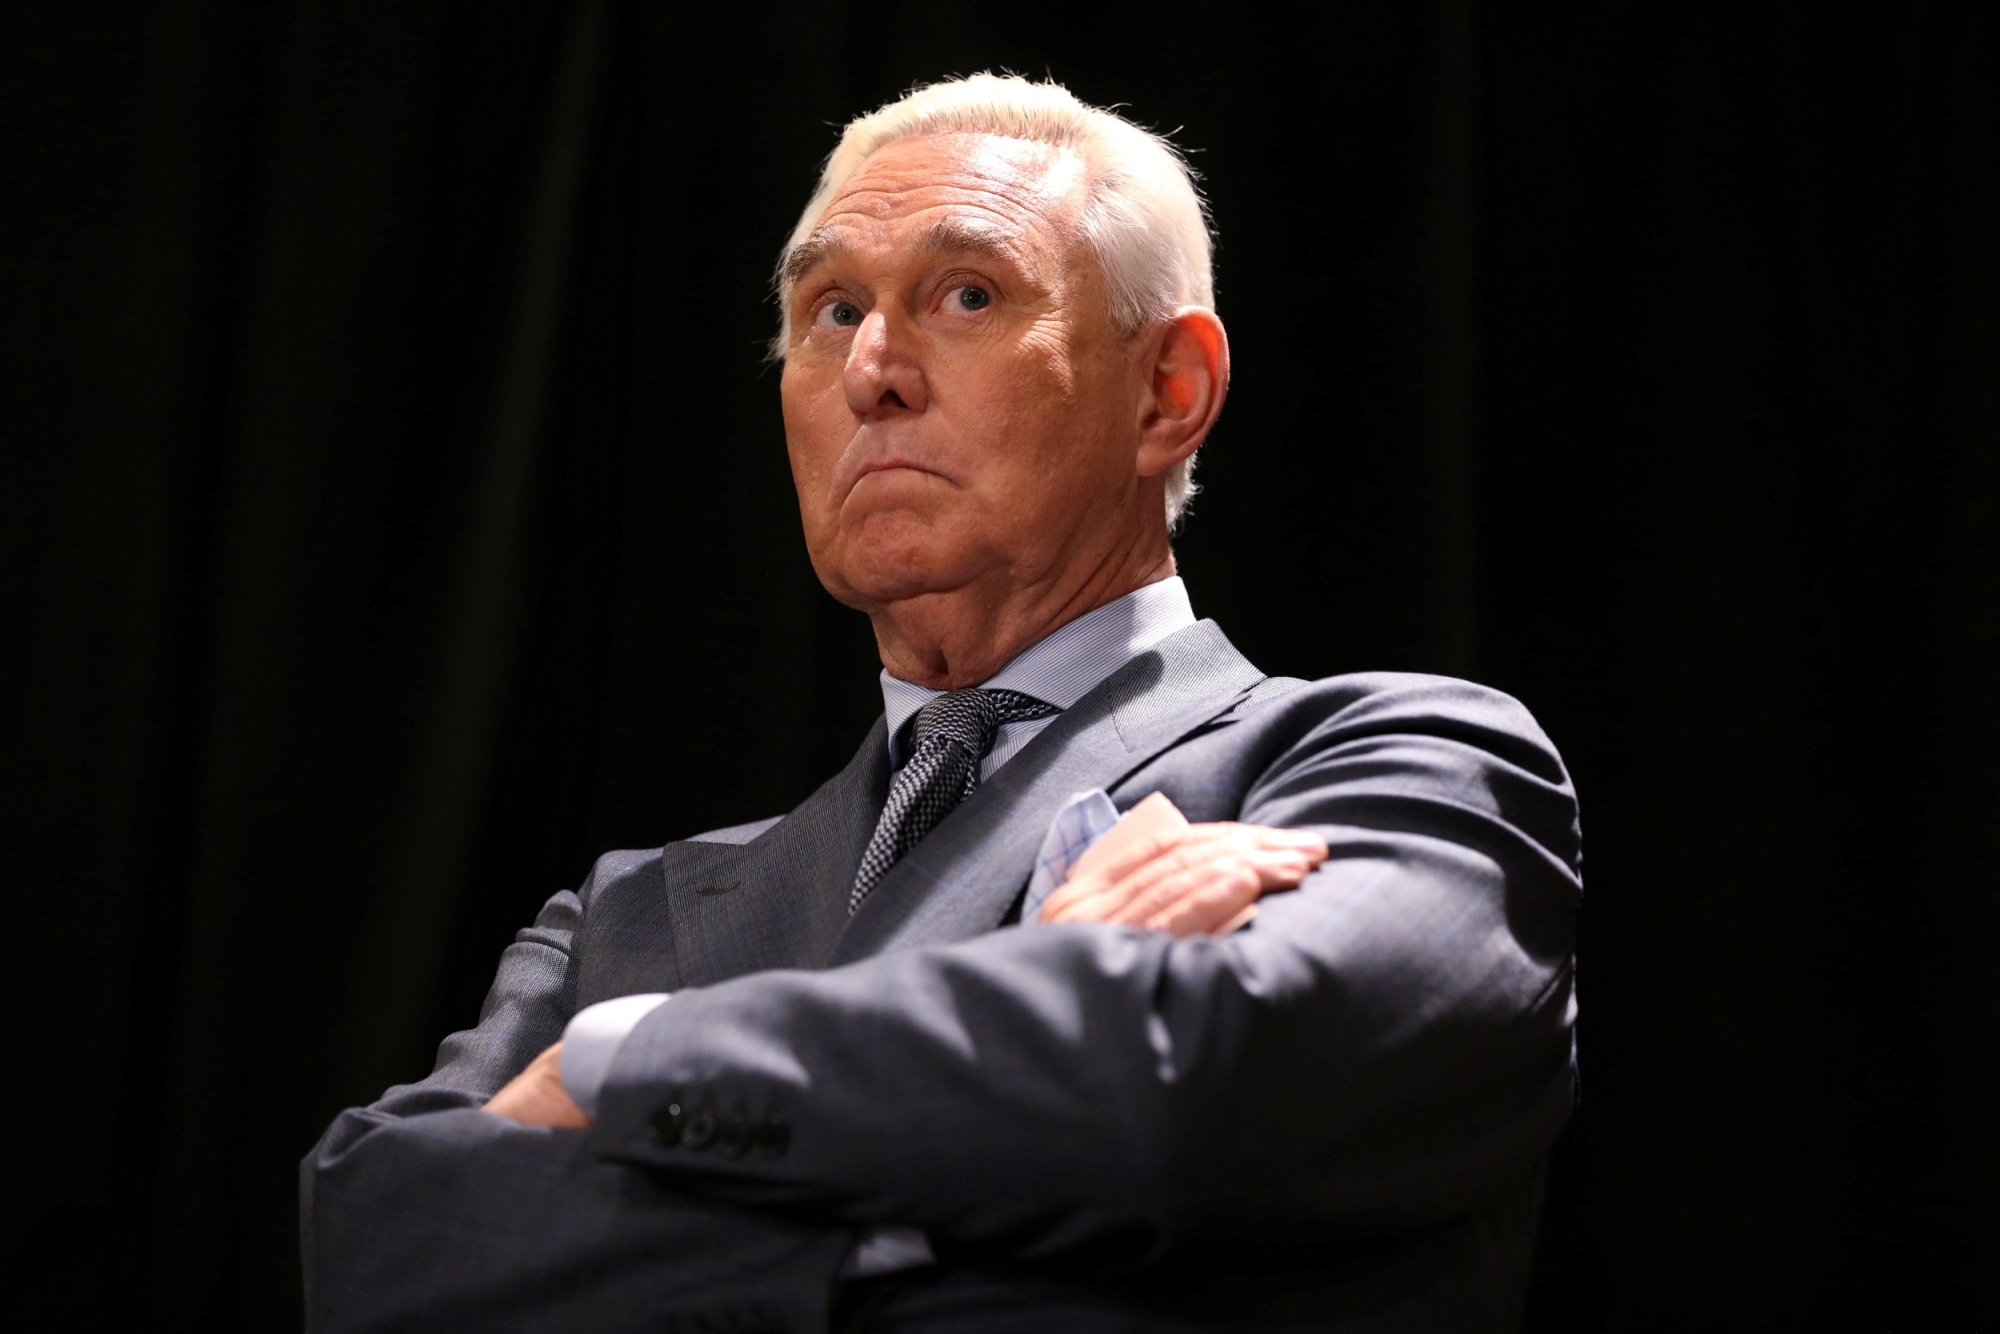 Justice Department sues Trump ally Roger Stone, alleging millions in unpaid taxes